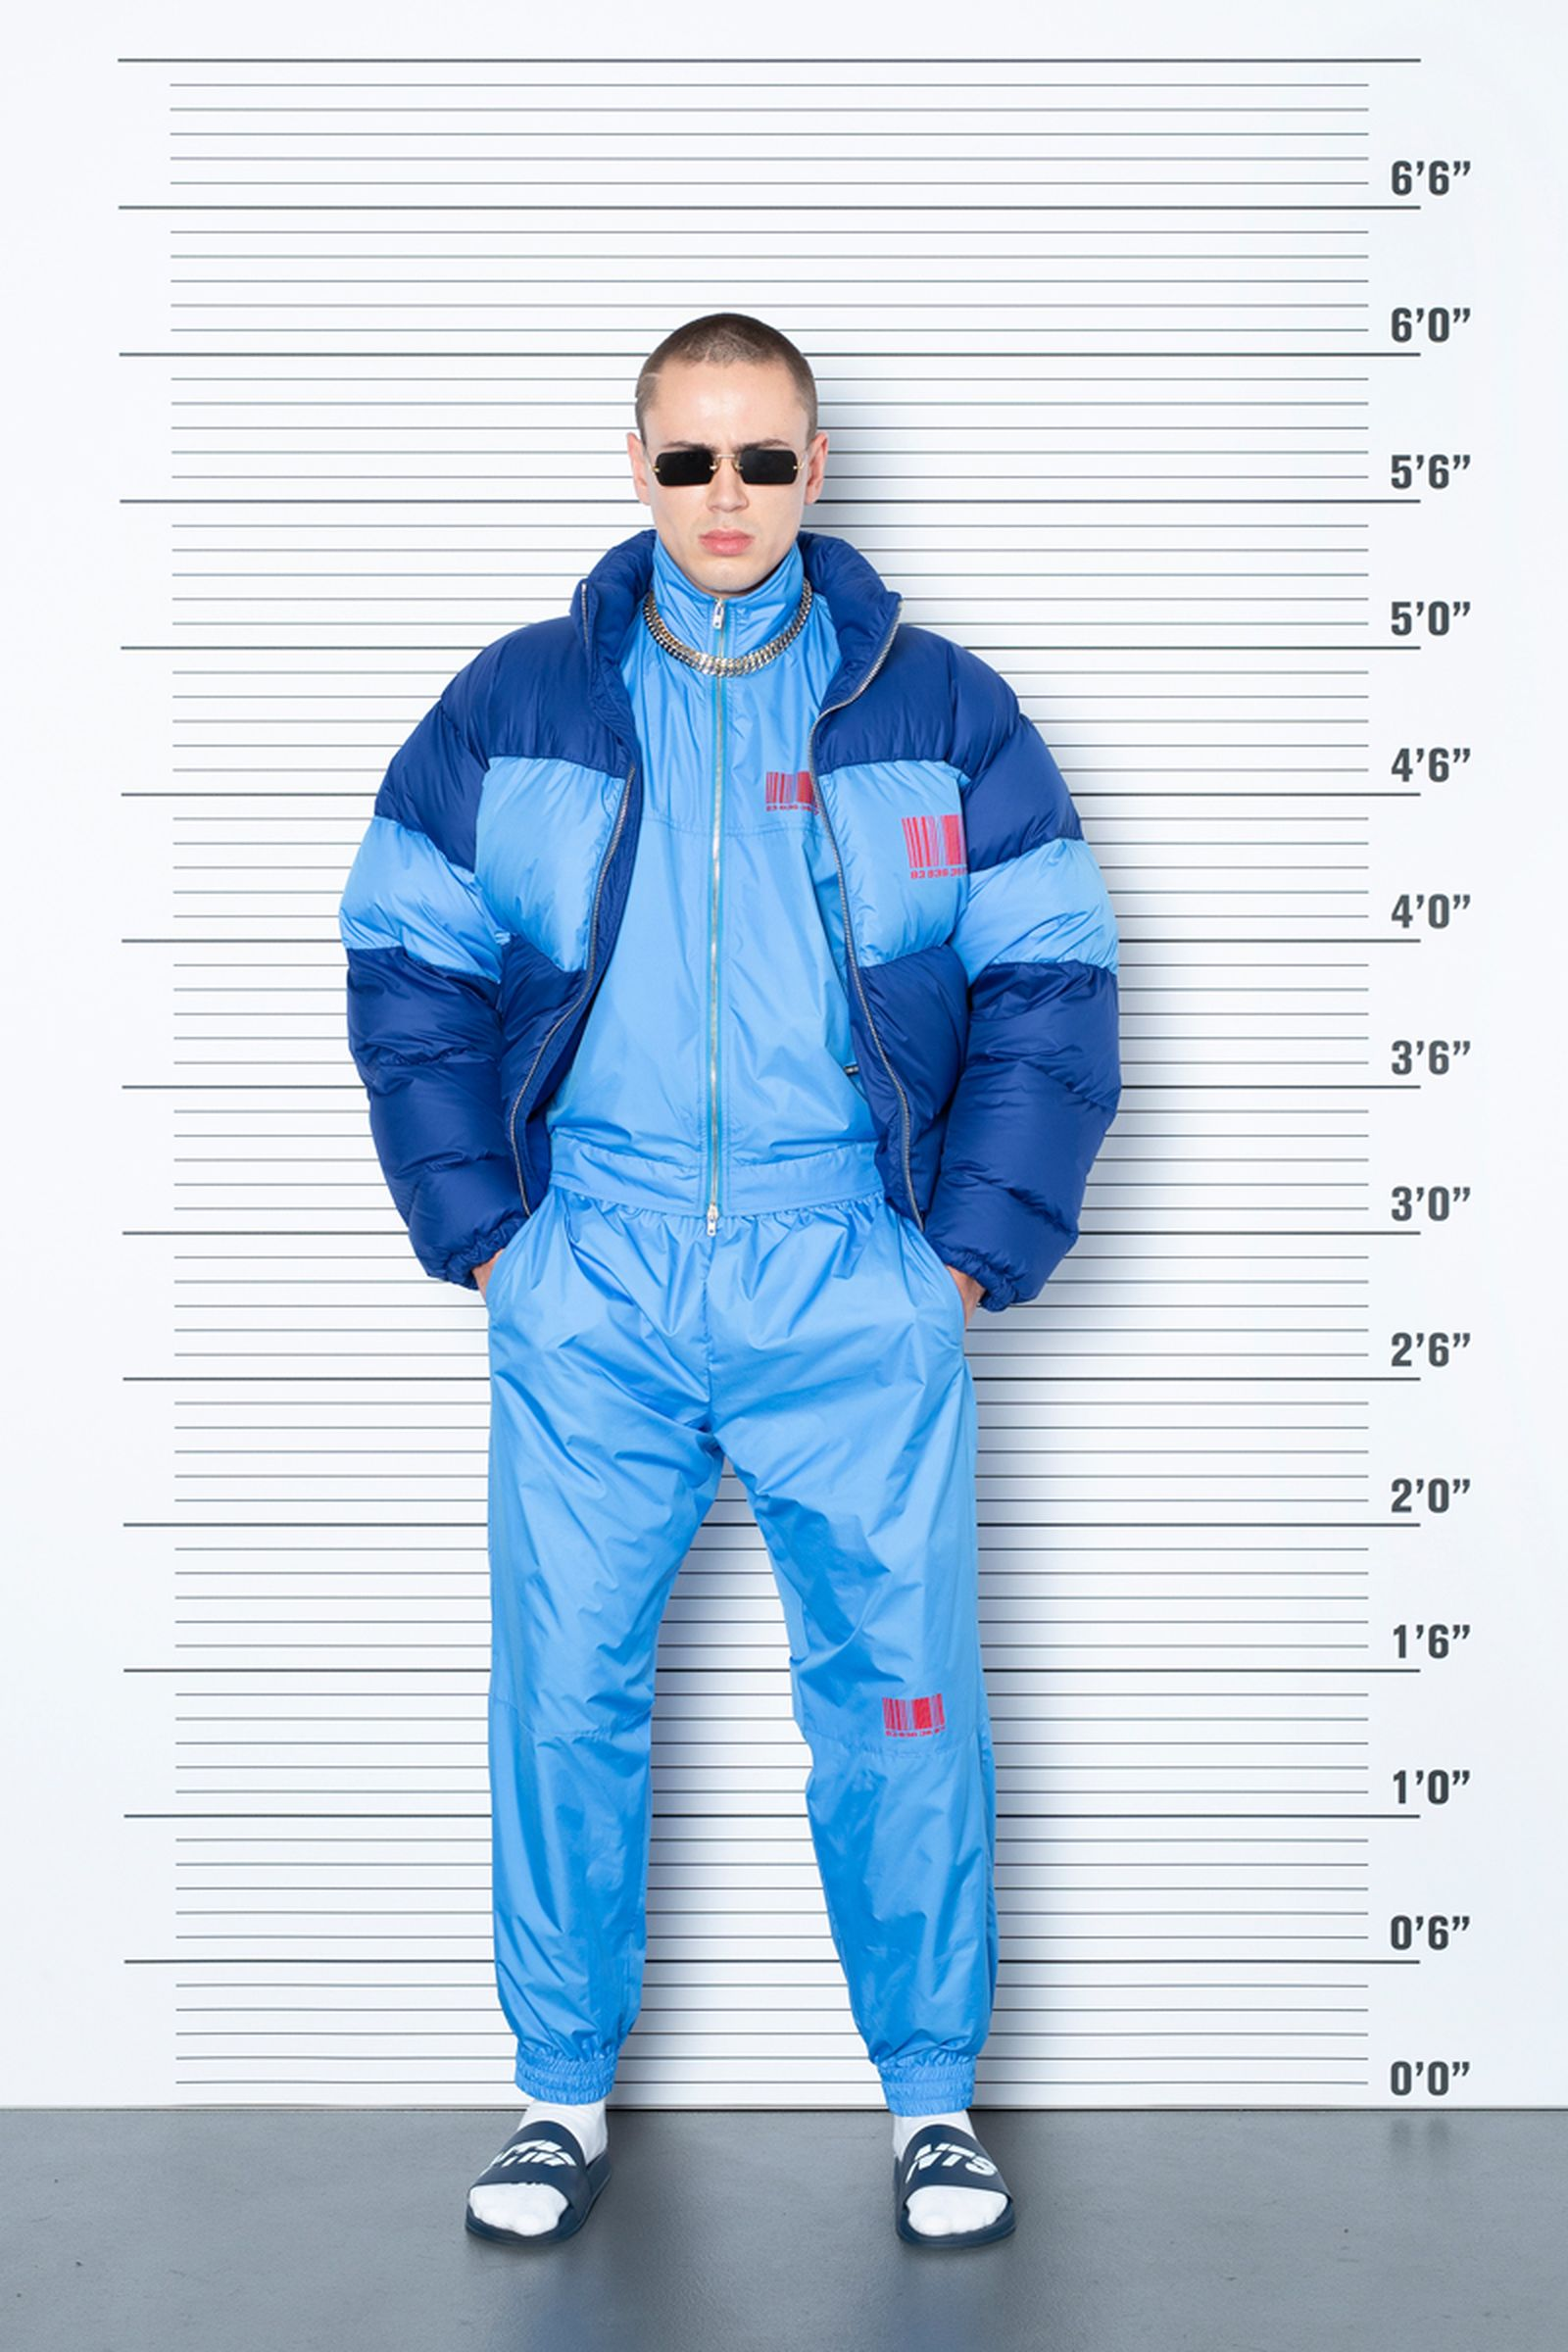 vetements-vtmnts-ss22-collection-lookbook- (50)